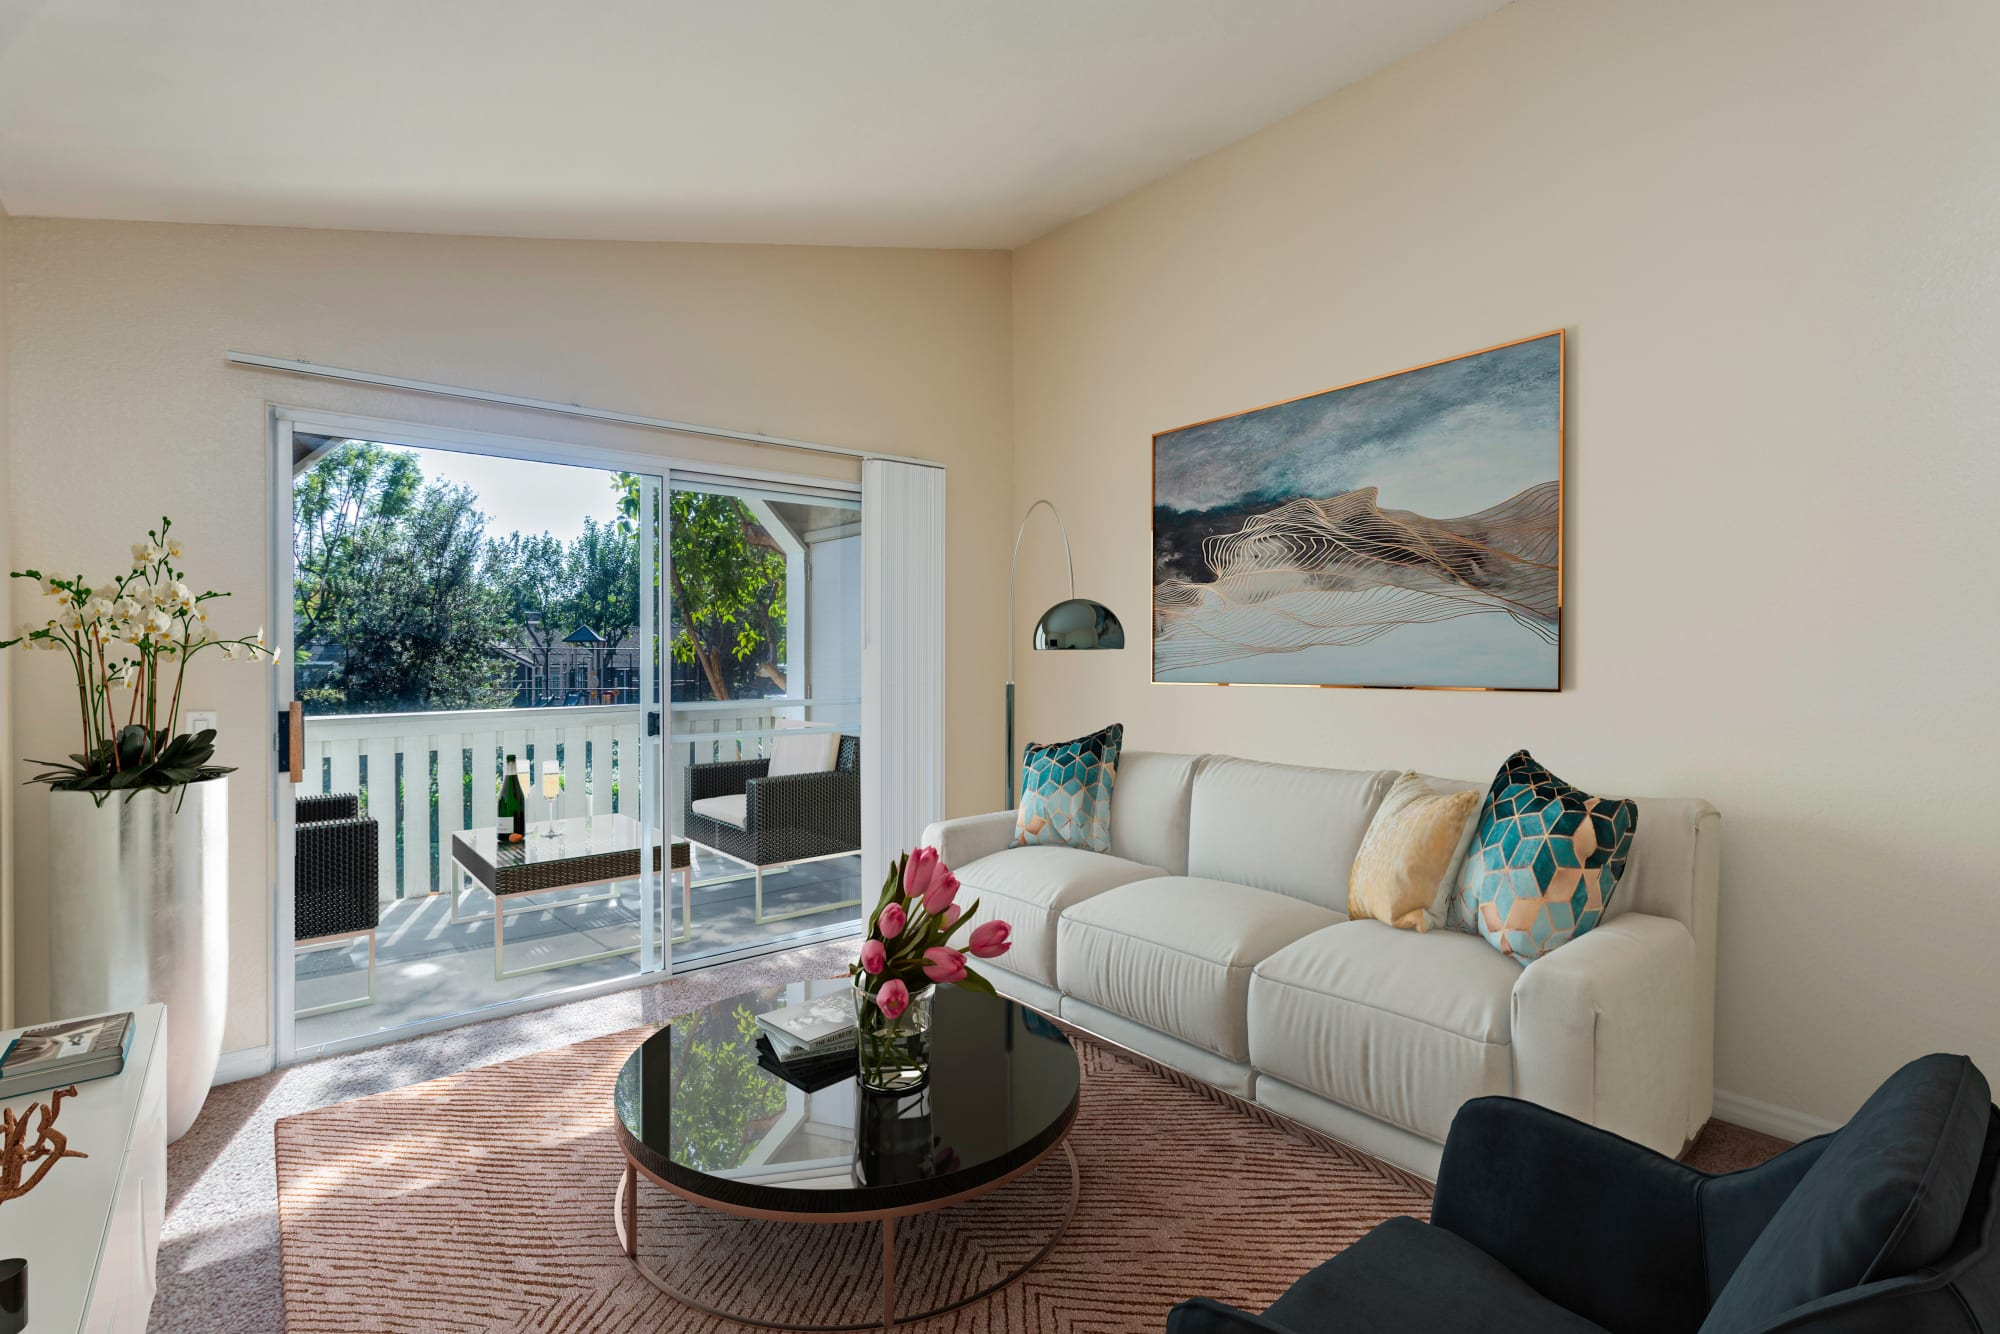 Furnished  Living Room with Sliding Door to Spacious Patio at Village Oaks in Chino Hills, California